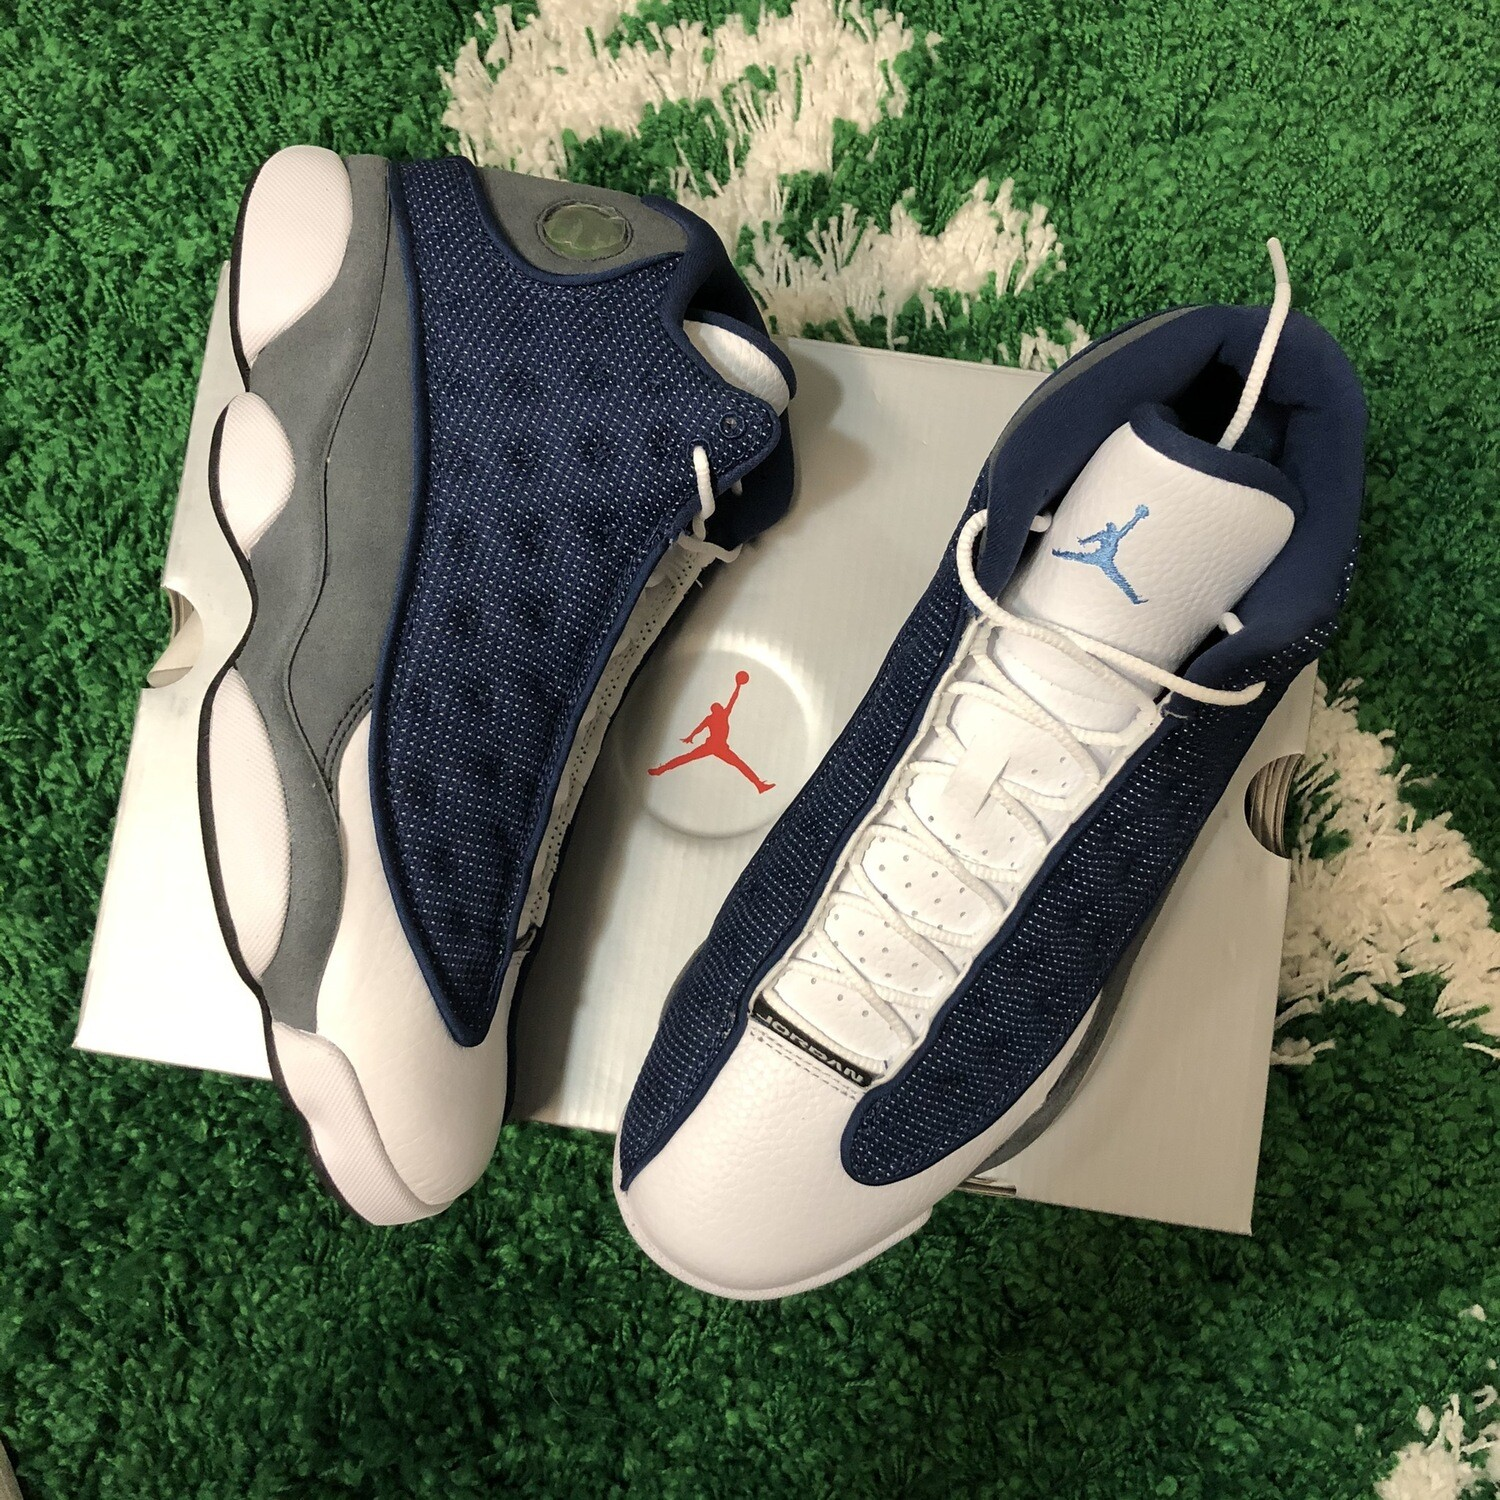 Air Jordan 13 Flint Size 11